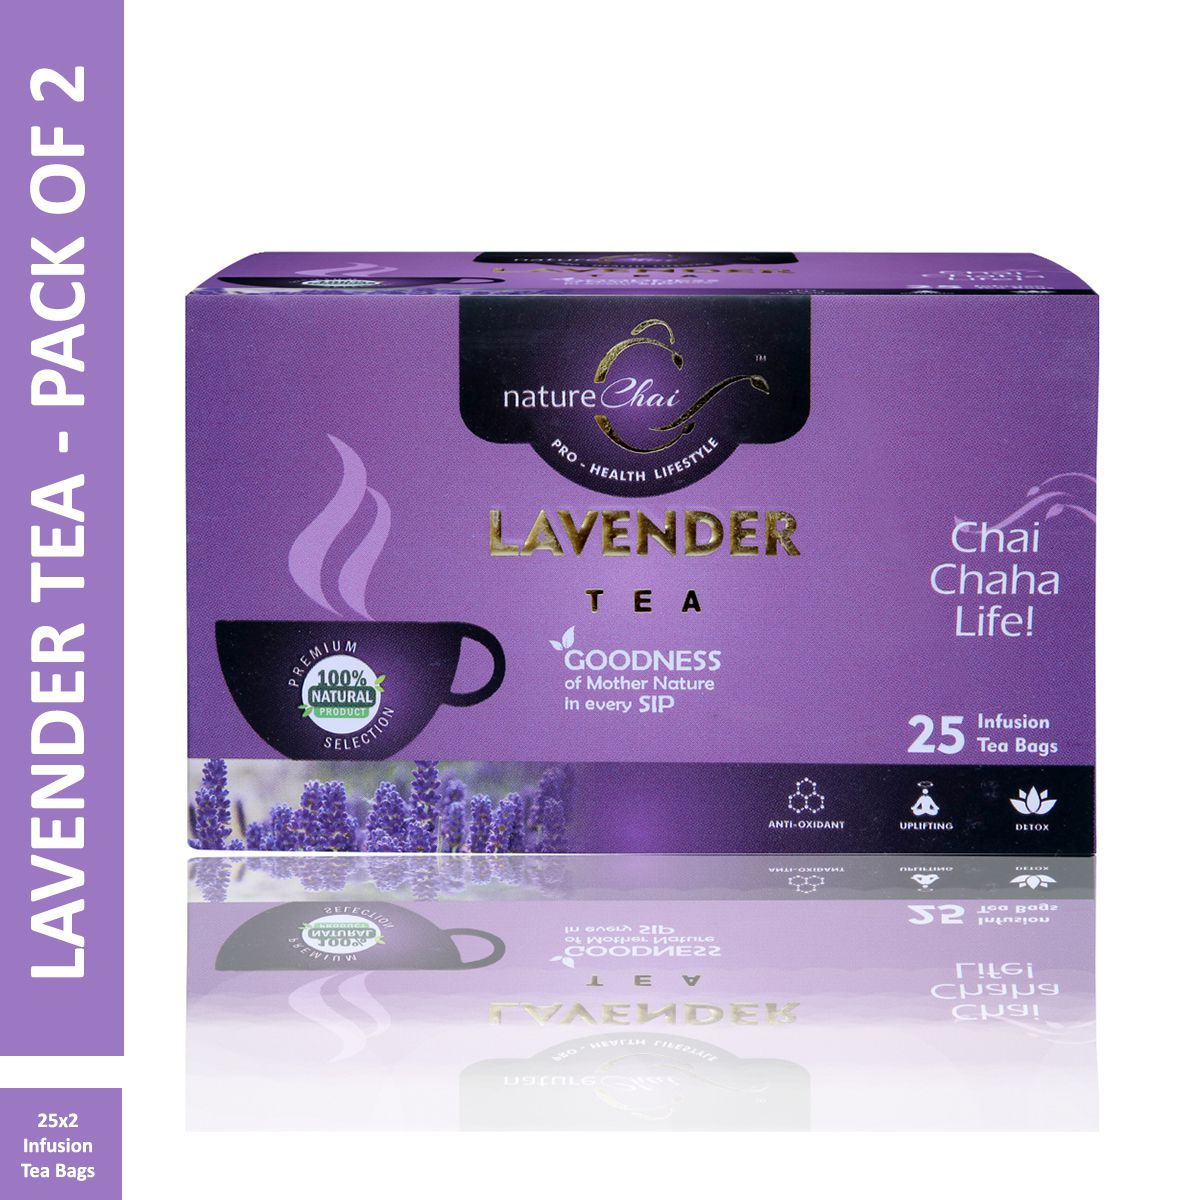 Nature Chai Lavender Green Tea Bags 25 no.s Pack of 2